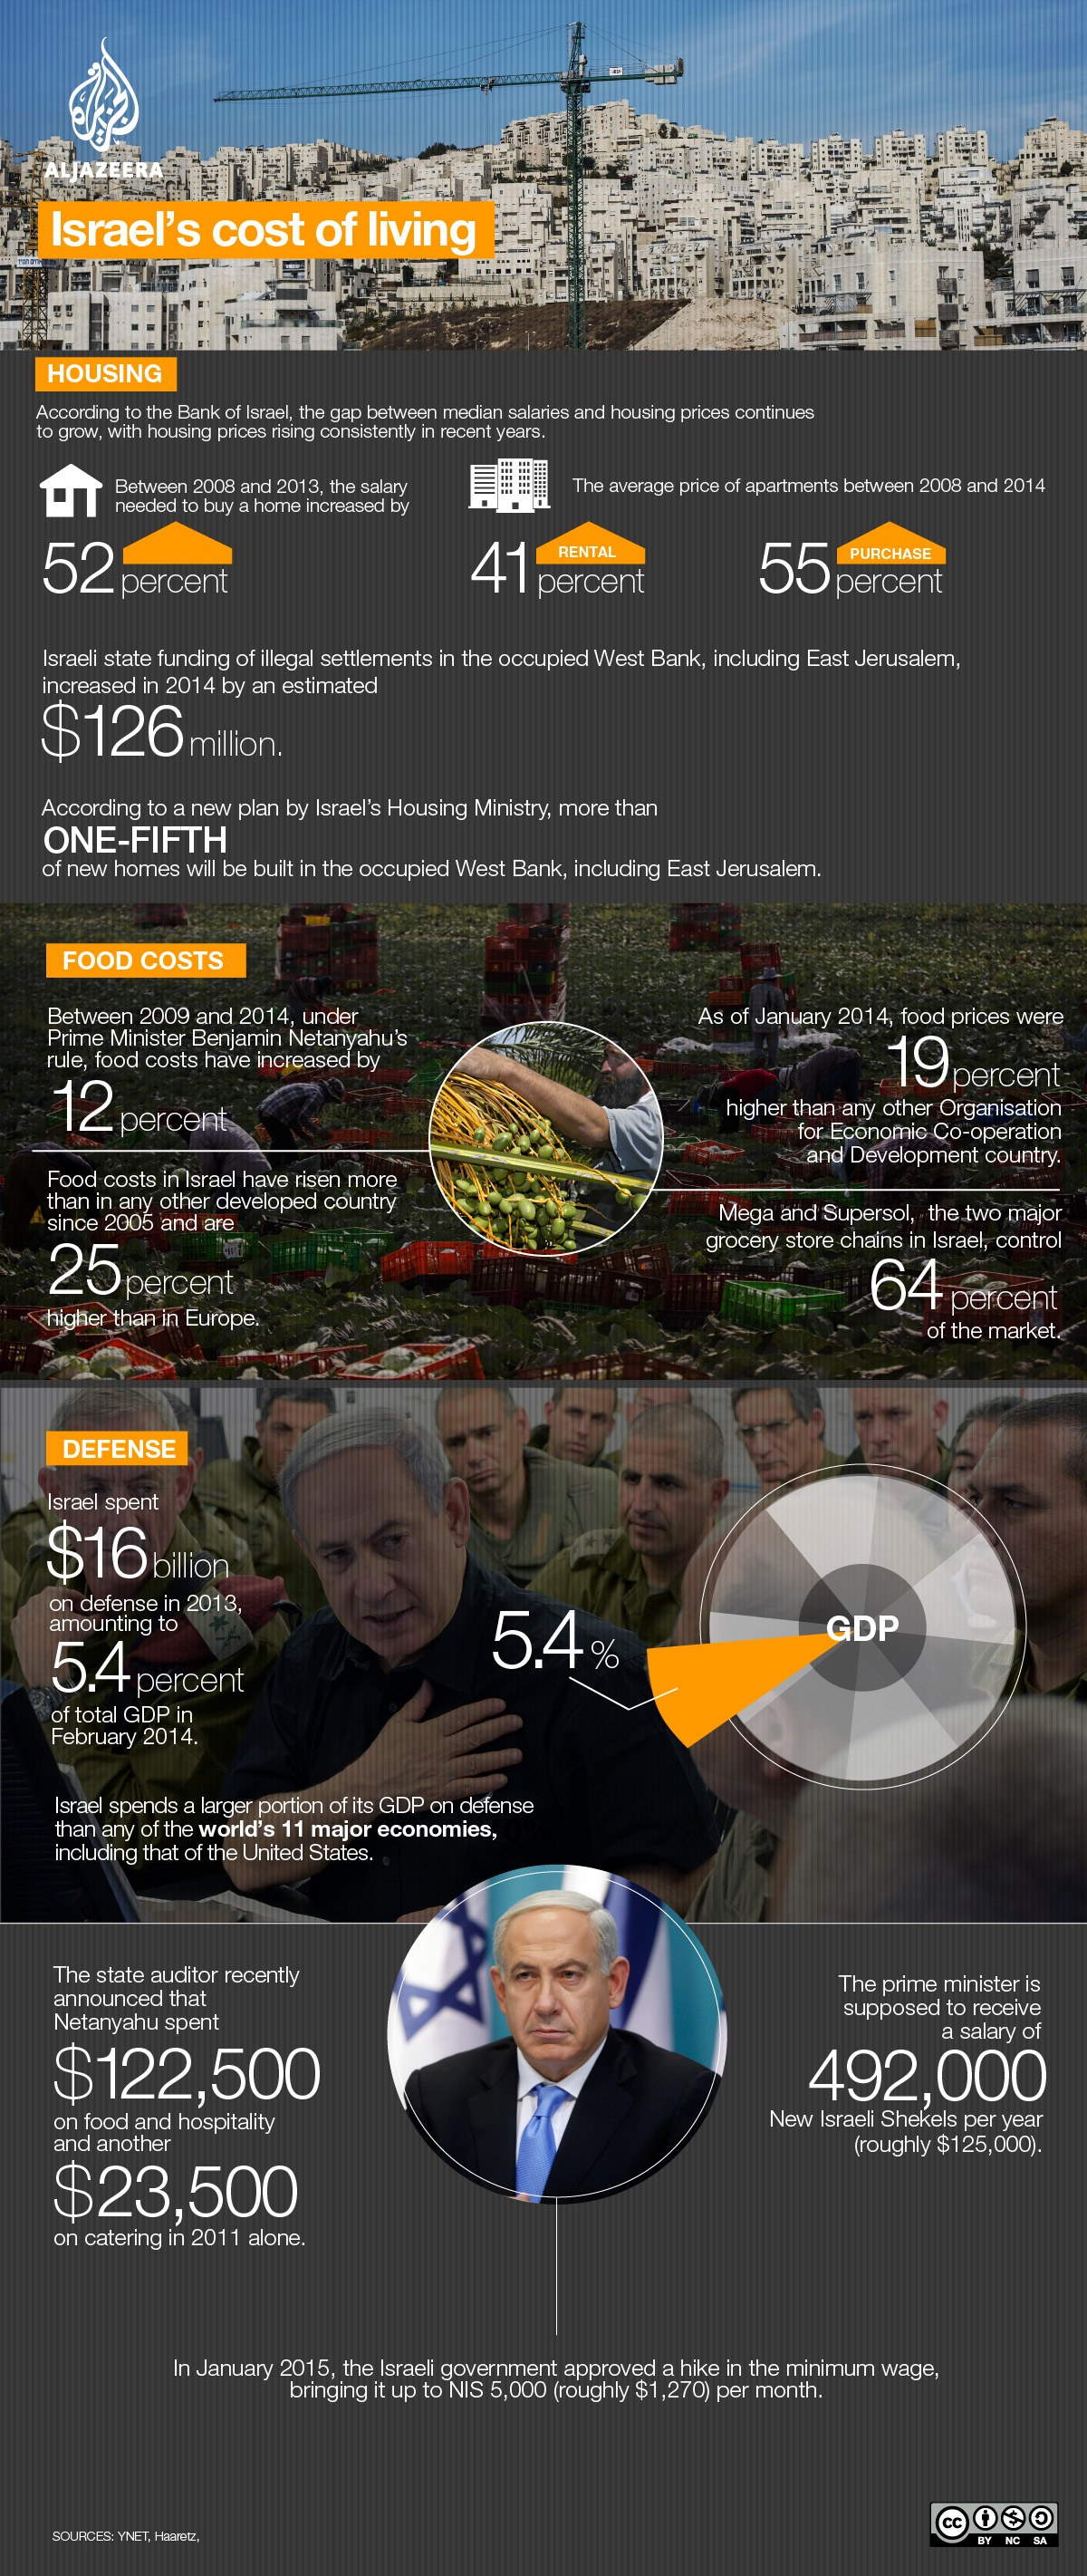 Israel's cost of living